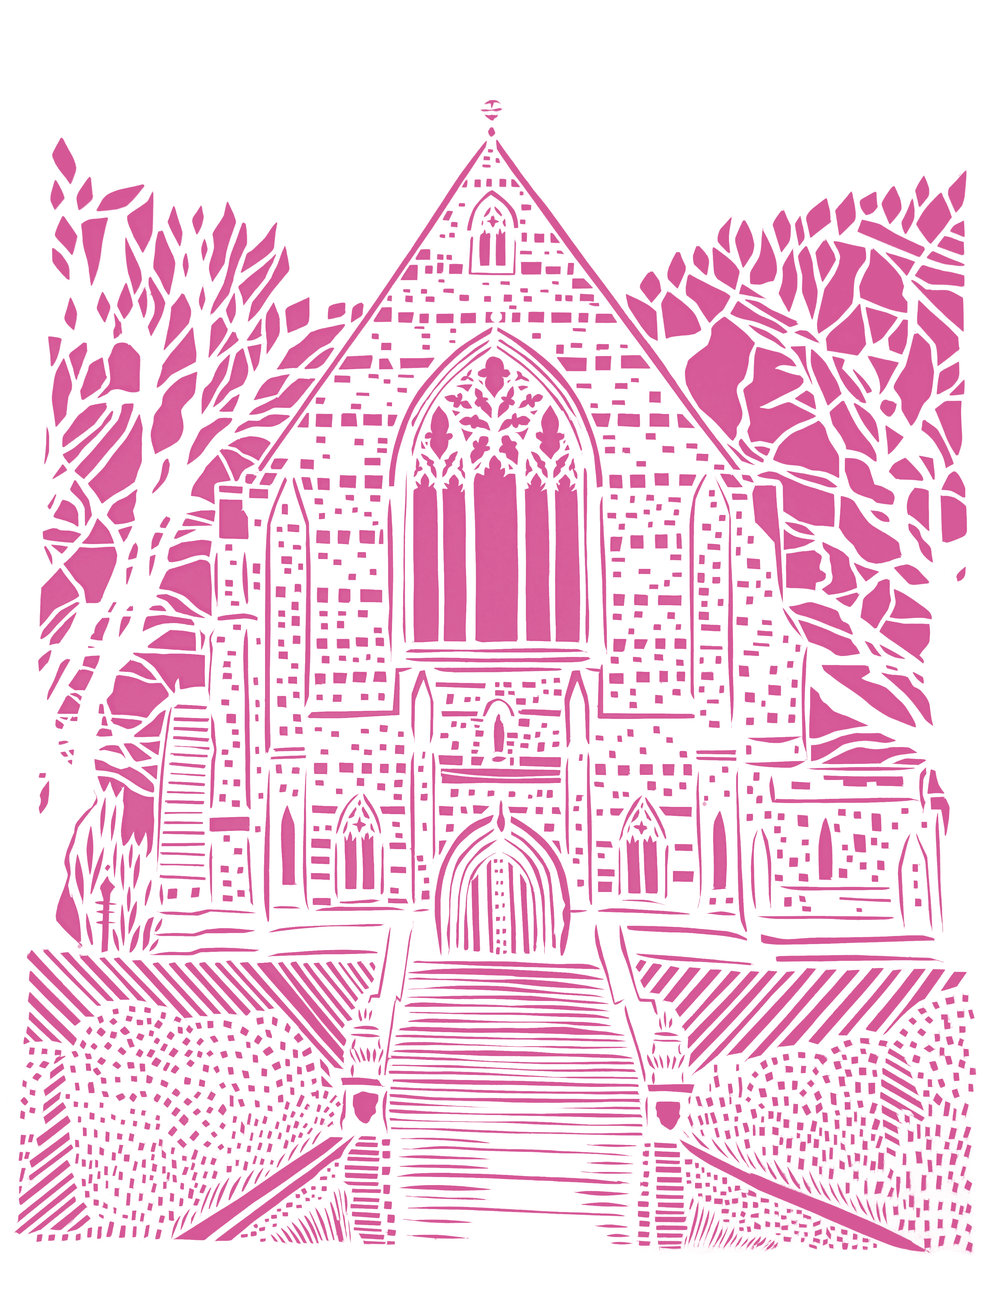 Marlborough College Chapel, pink and white papercut, 21.0 x 29.7cm